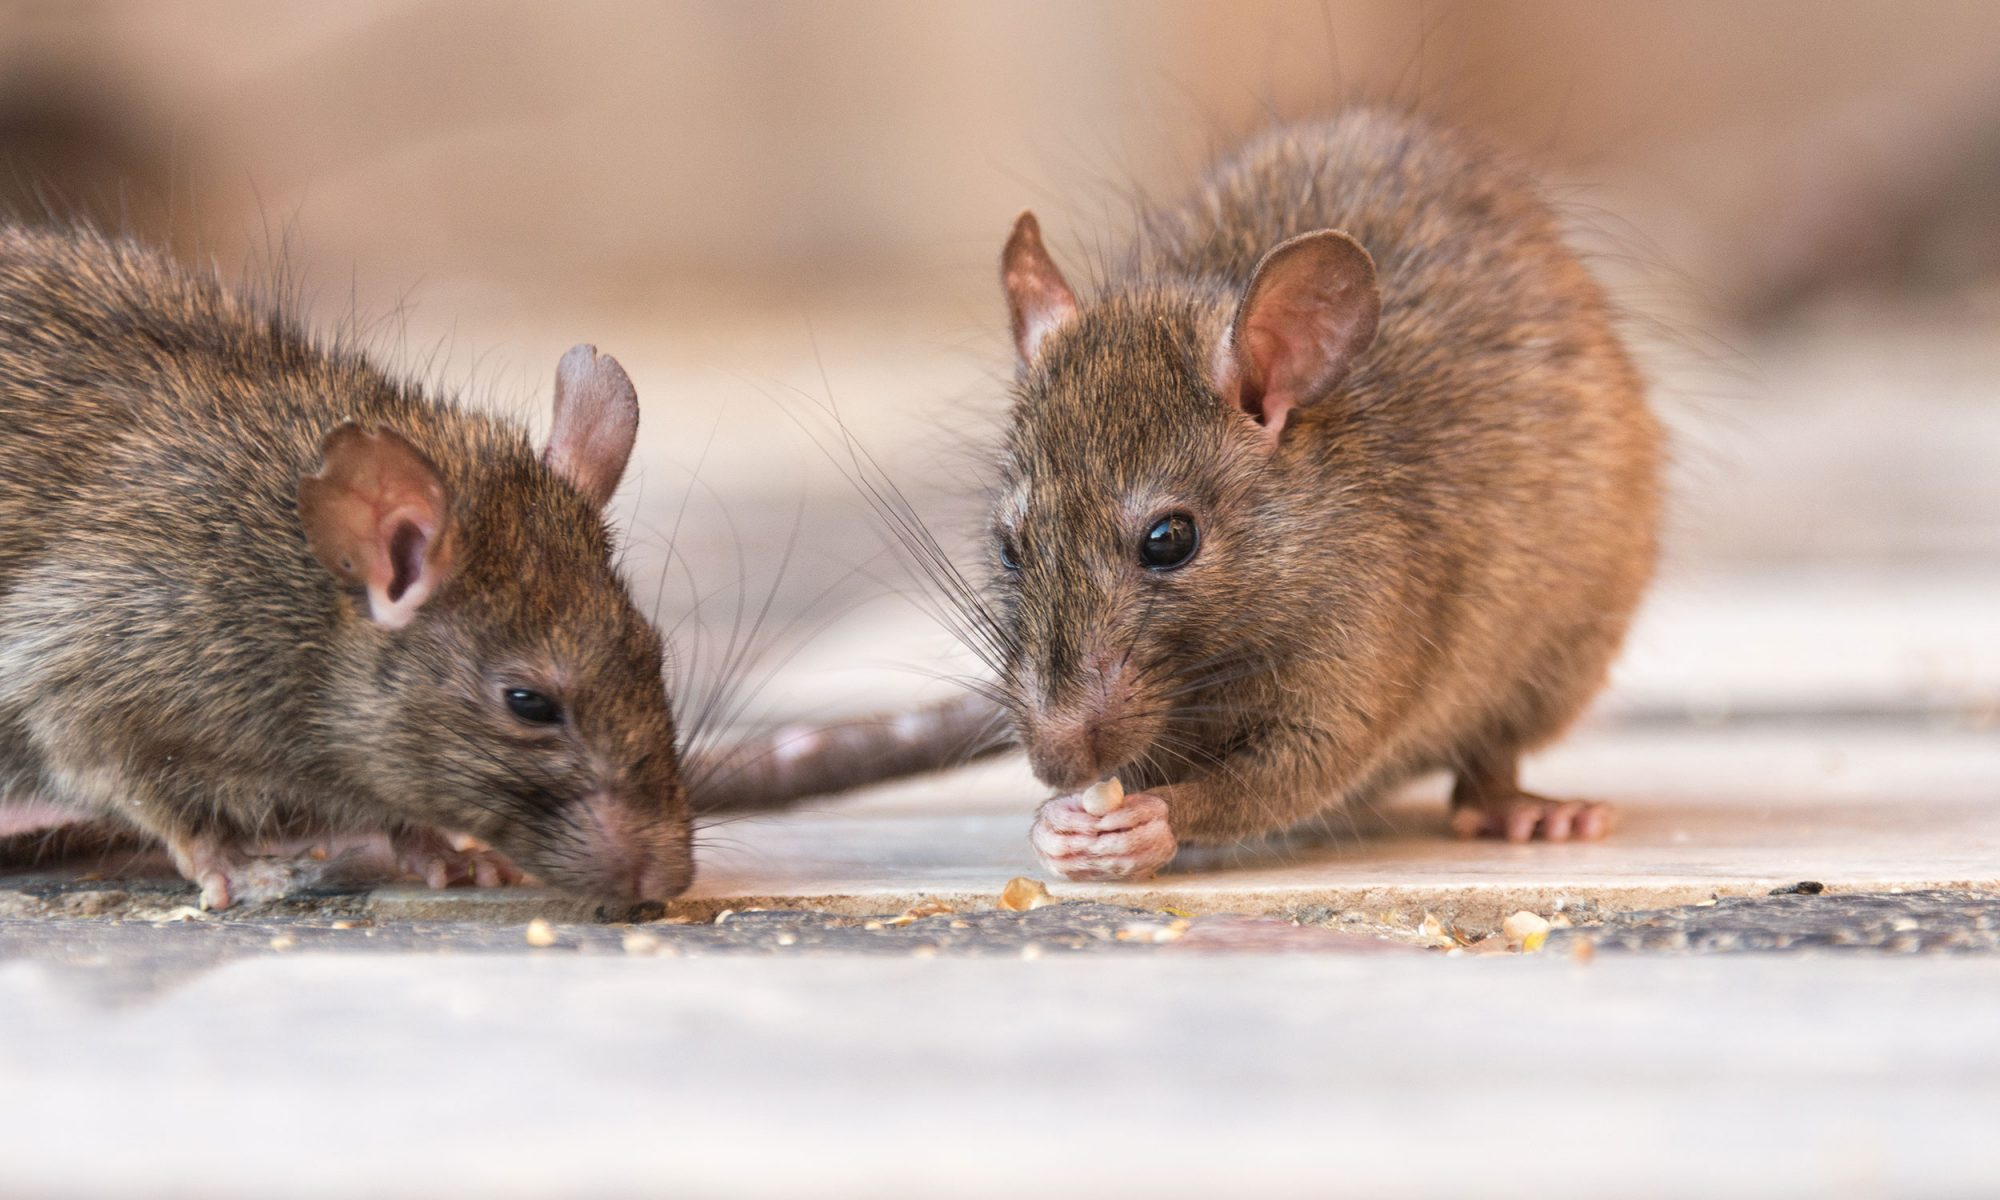 EC: This Cafe Is Crawling with Rats, but It's On Purpose